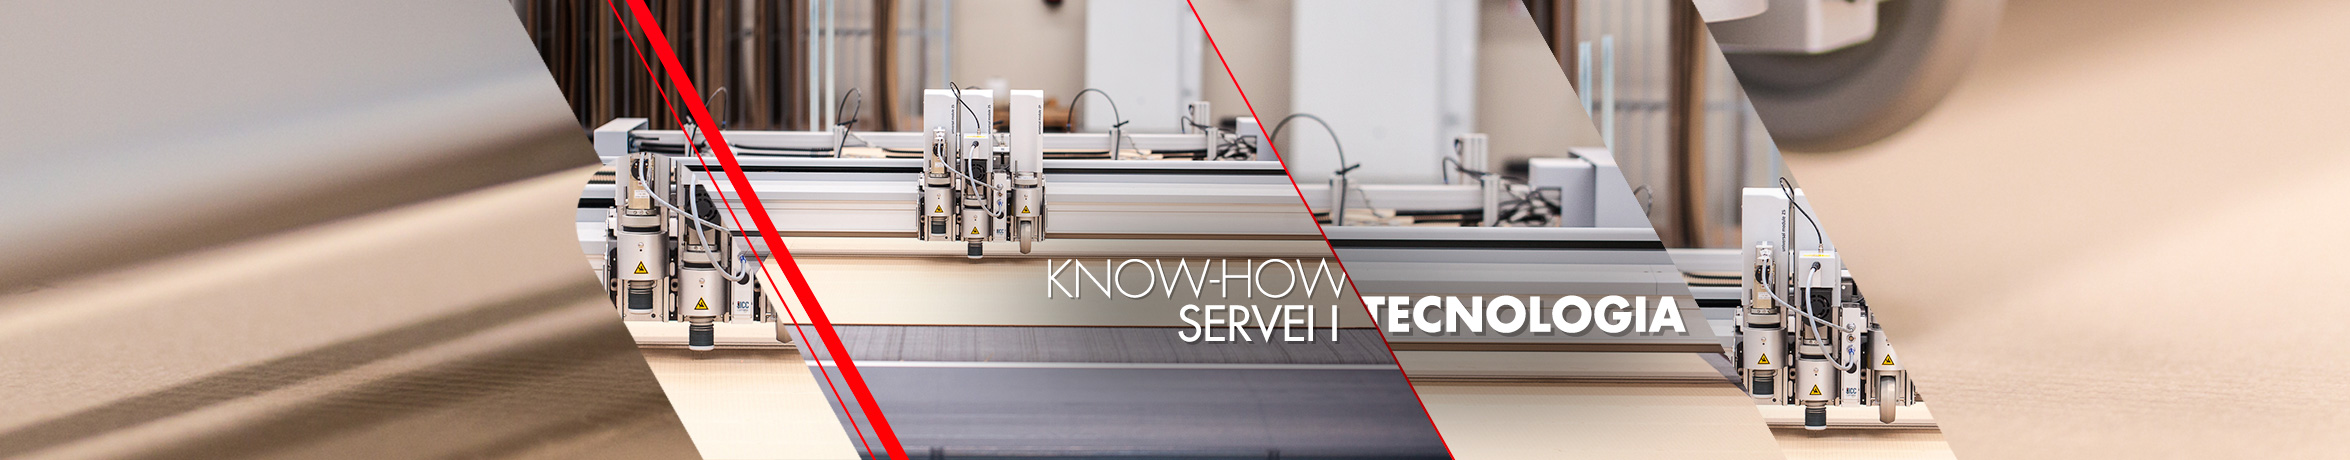 Know how, servei i tecnologia